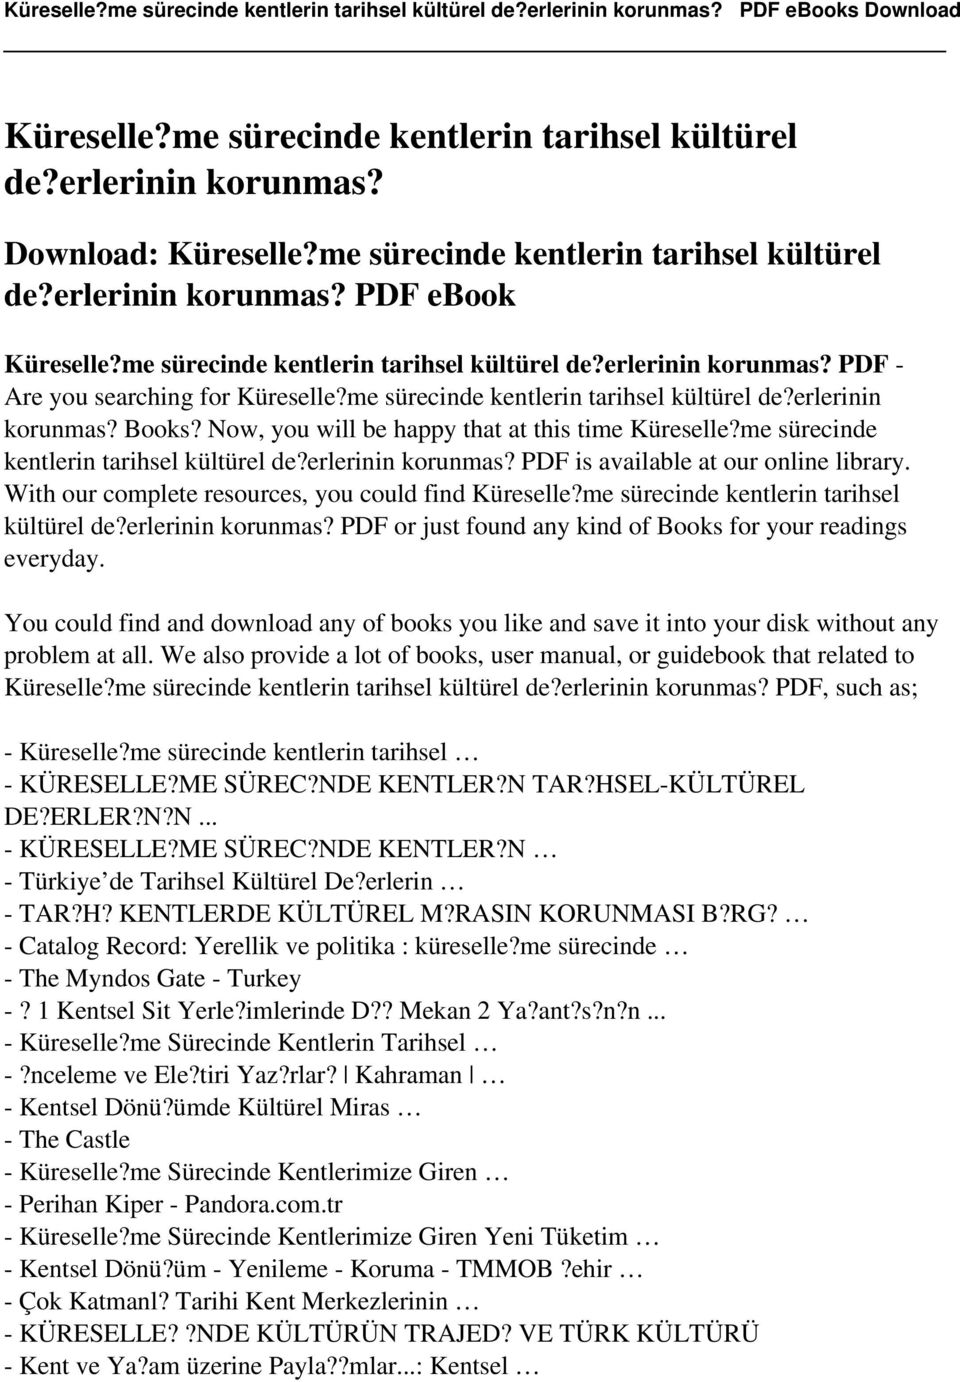 Now, you will be happy that at this time Küreselle?me sürecinde kentlerin tarihsel kültürel de?erlerinin korunmas? PDF is available at our online library.